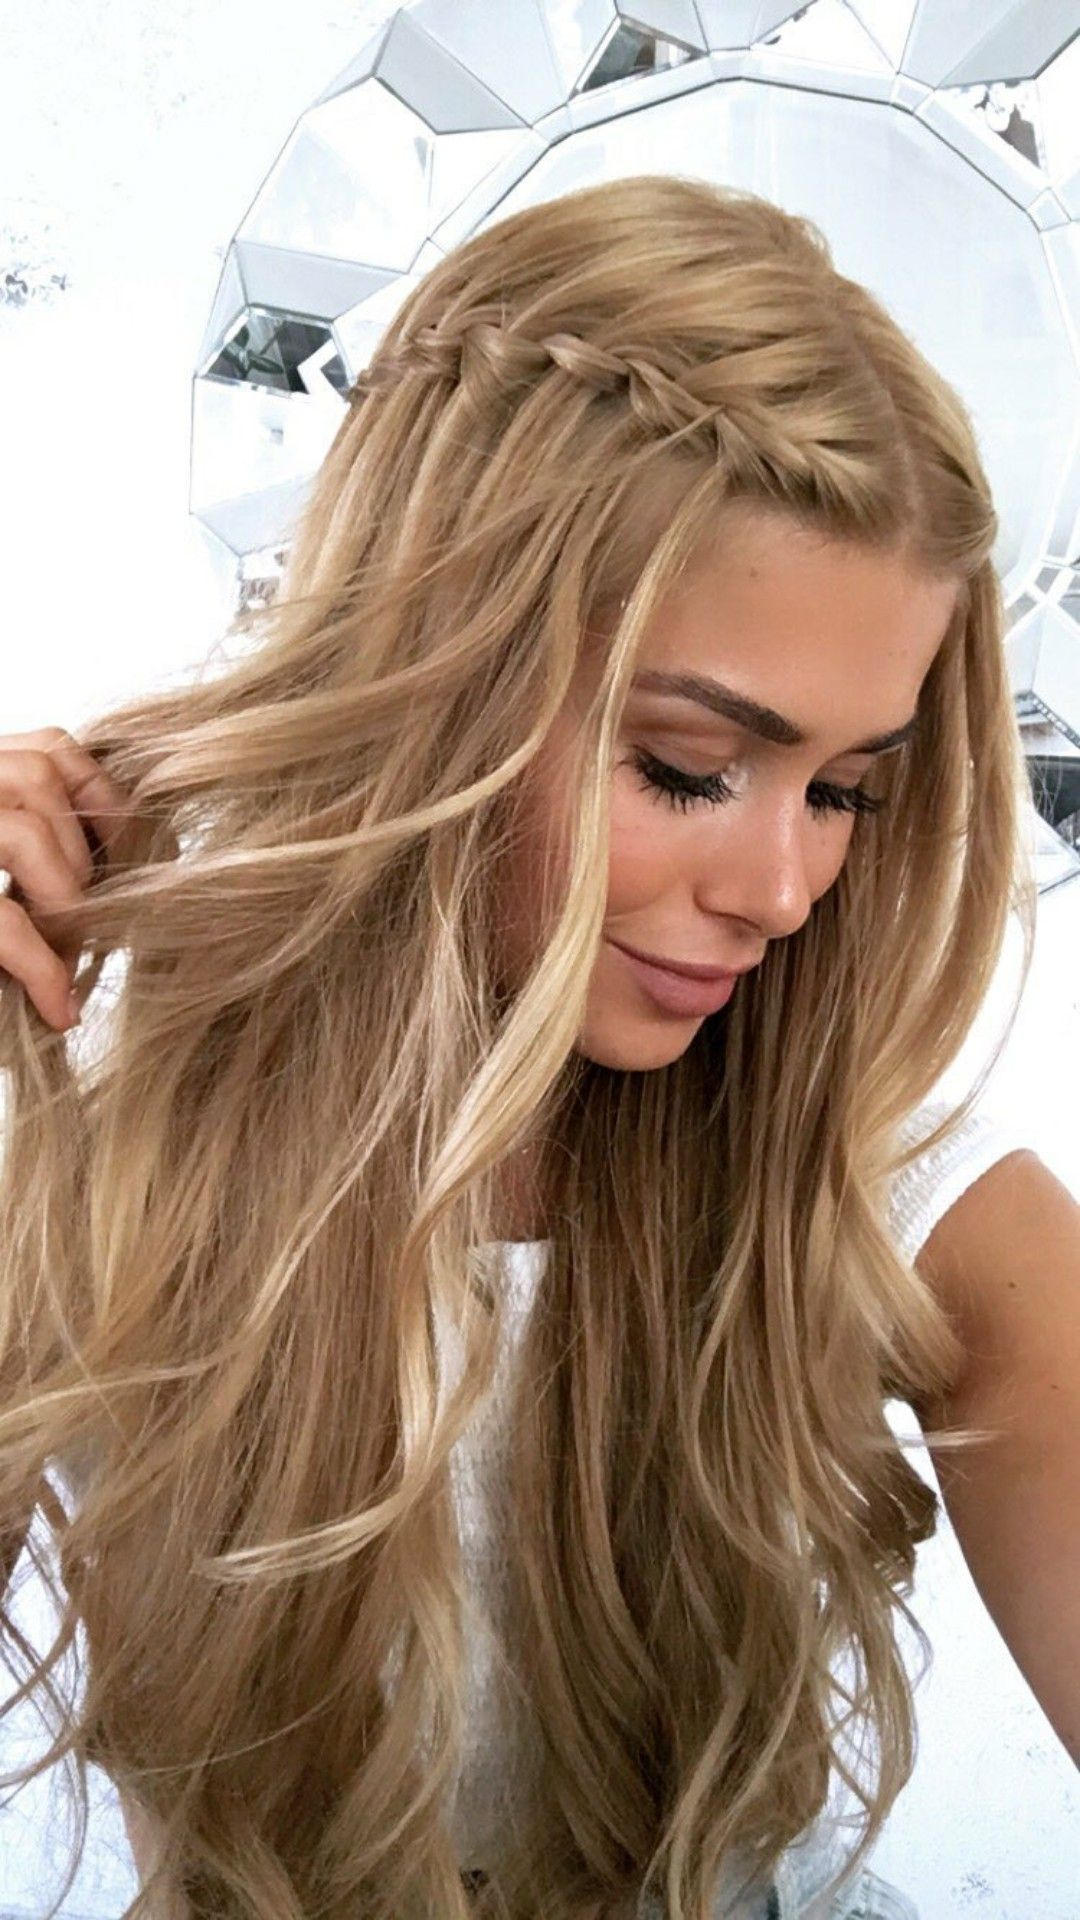 Grace hair | Formal hairstyles for long hair, Prom hairstyles for long hair, Easy formal hairstyles